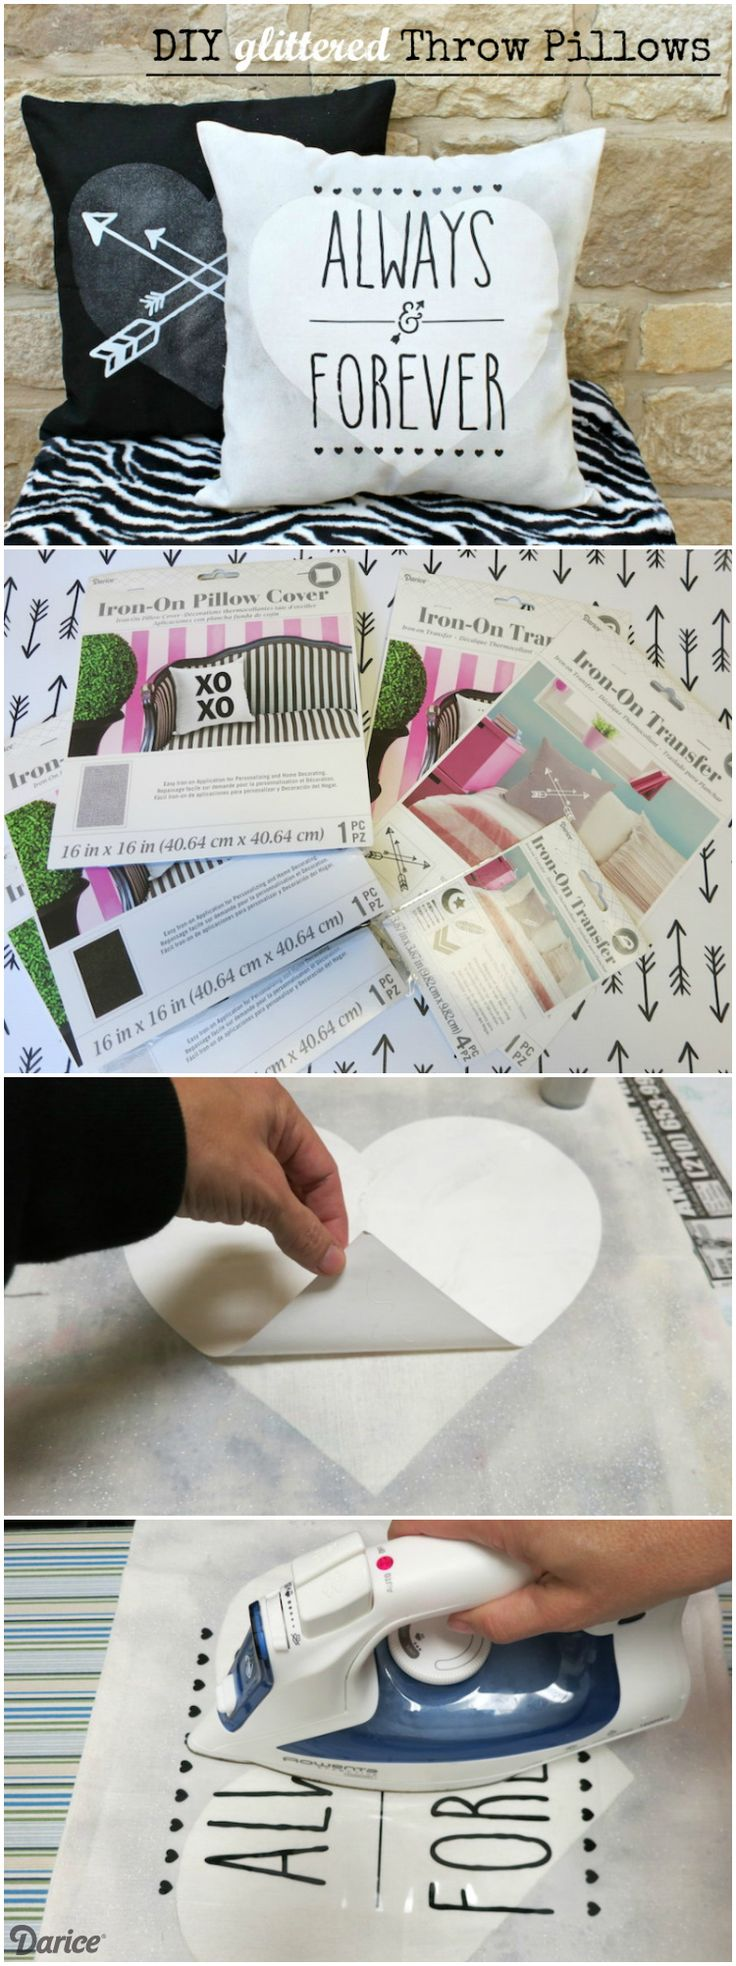 Accent pillows are an easy way to refresh a room's decor! These DIY throw pillows use glitter paint and the new iron on pillow transfers from Darice.